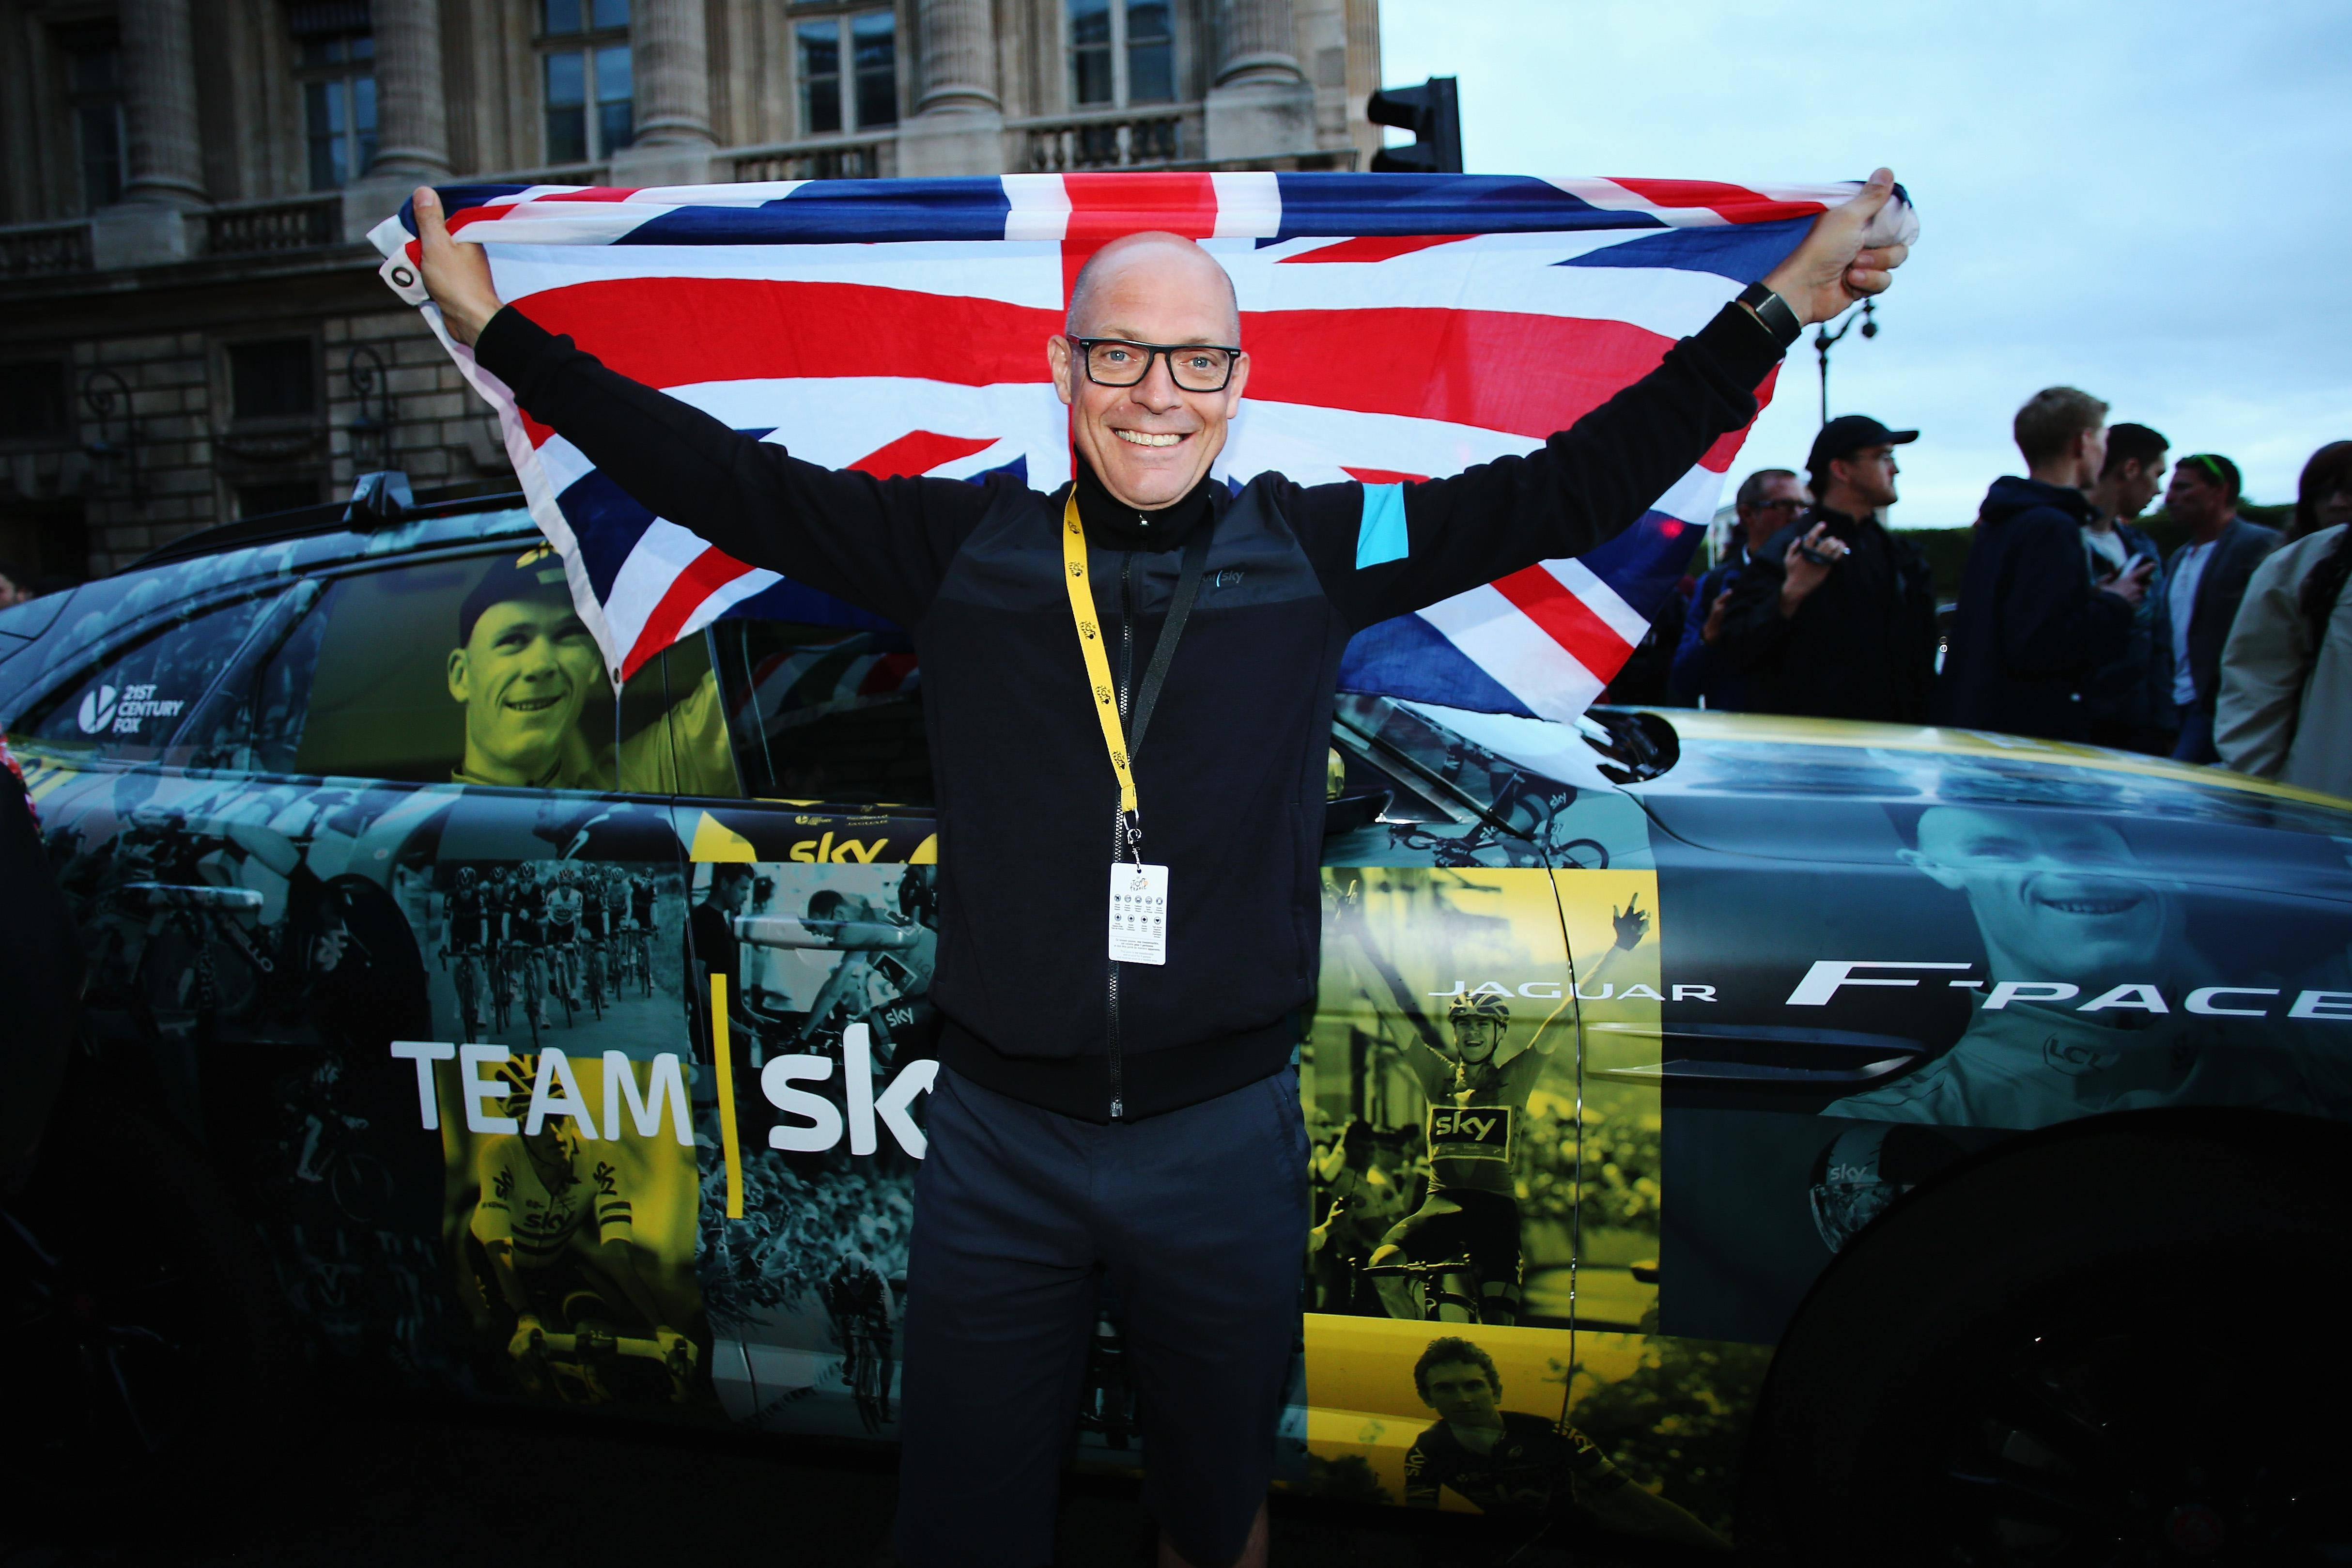 Dave Brailsford took pride in presenting himself as the most meticulous of sports team bosses